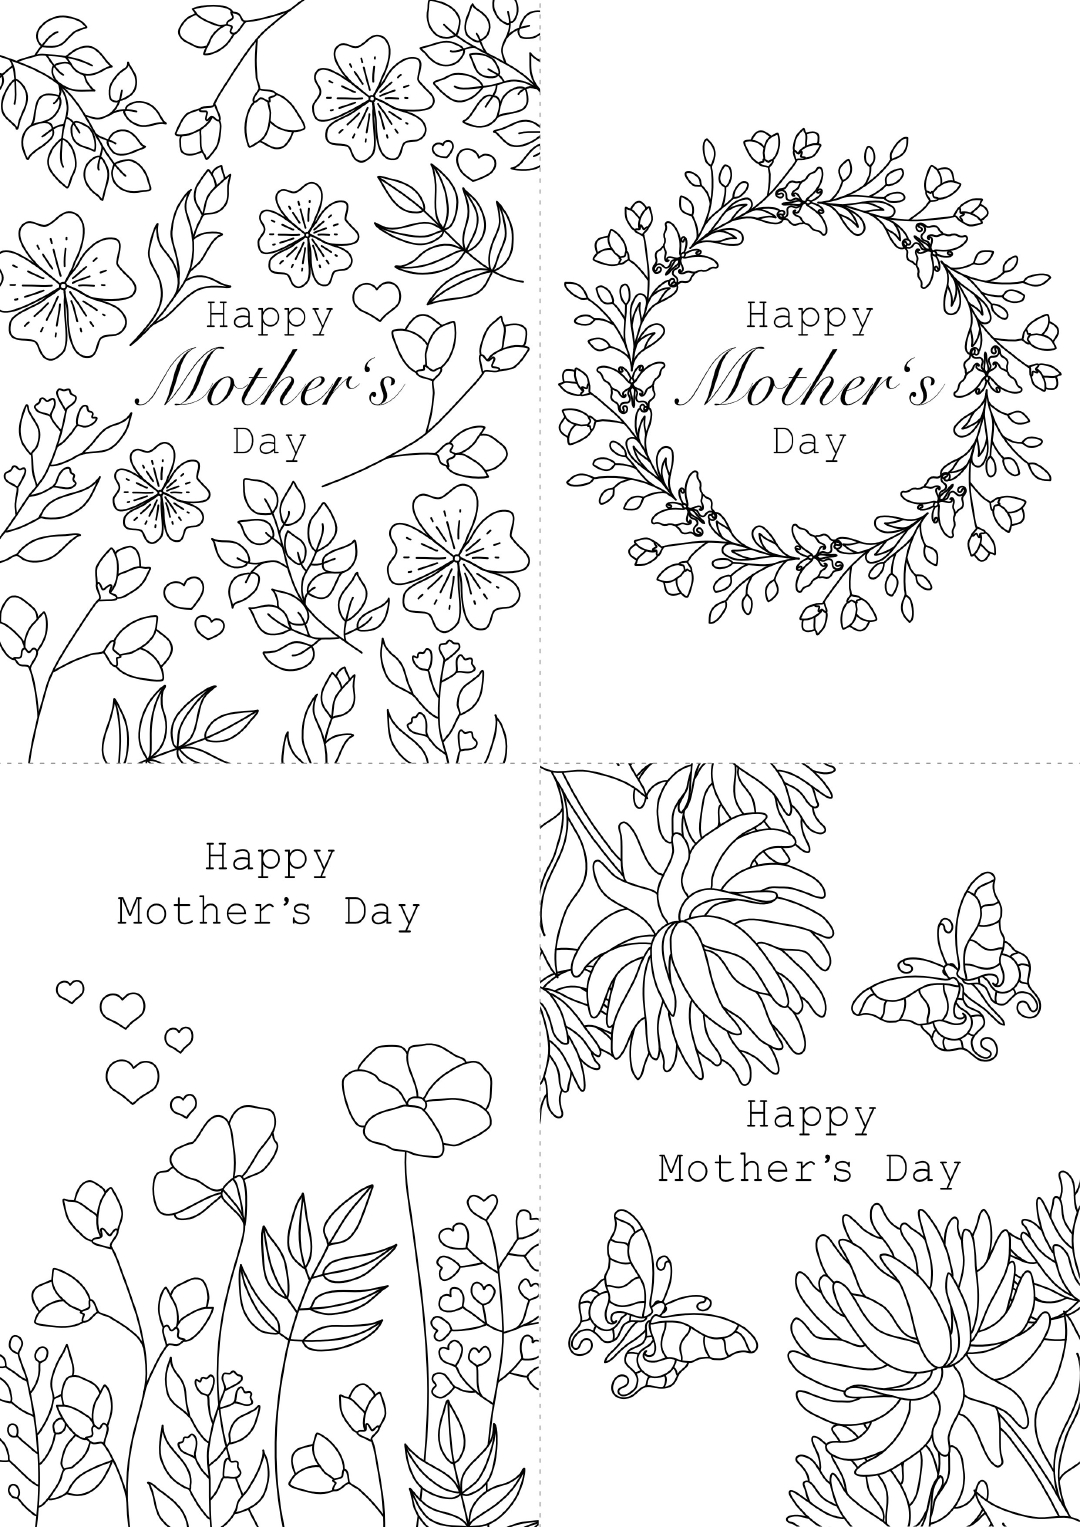 pdf/free-colouring-mothers-day-card.jpg